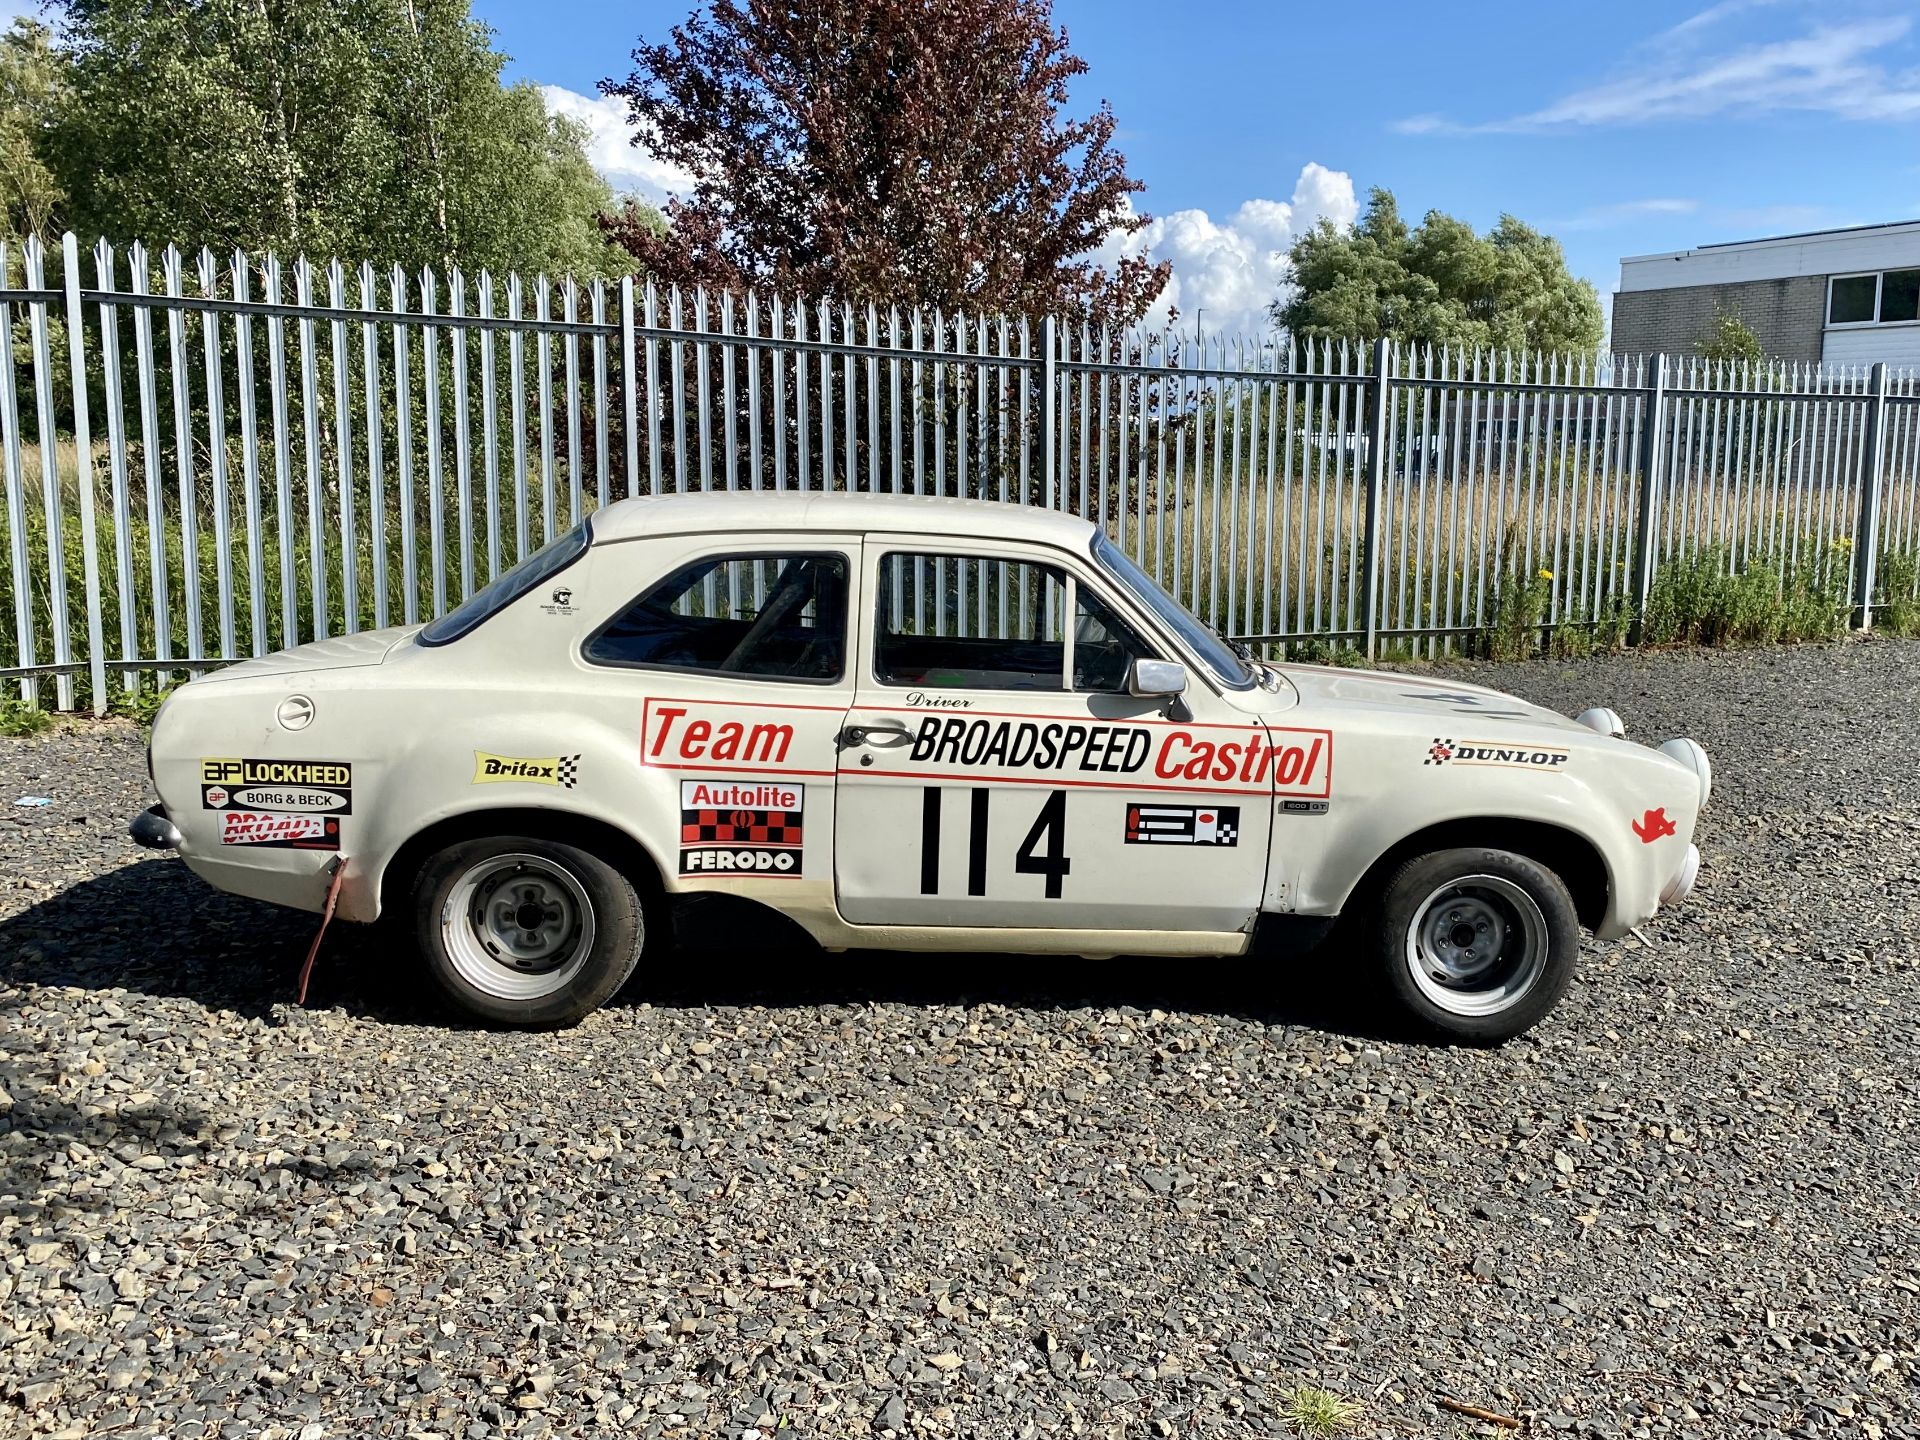 Ford Escort Mexico - Image 16 of 51